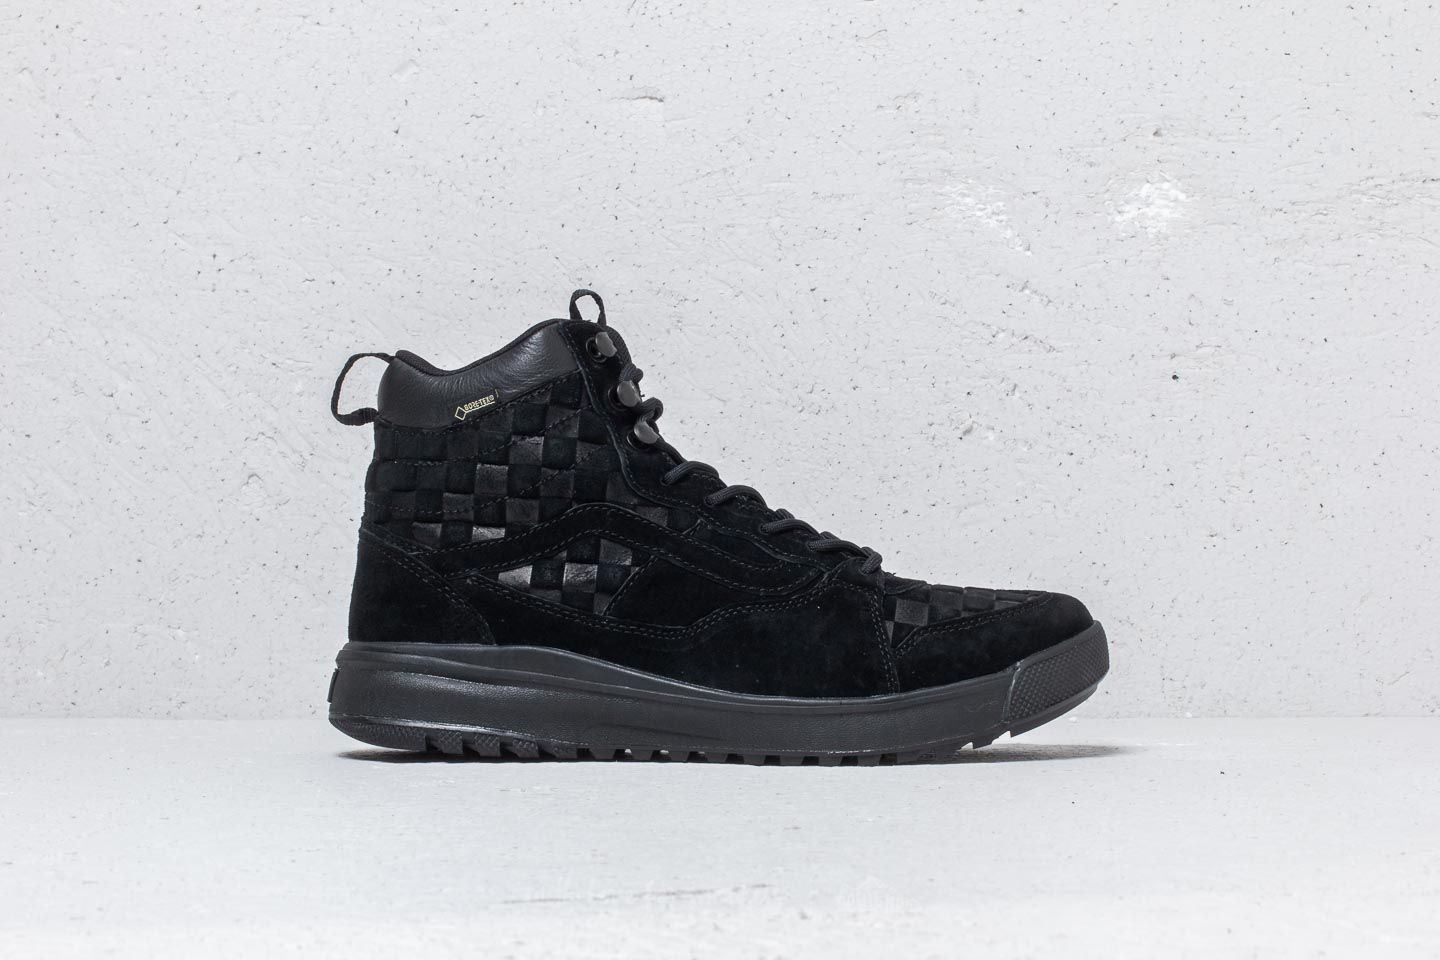 a1d61aa8f5cedf Vans UltraRange Hi Gore-Tex (Checkerboard) Black at a great price 152 €